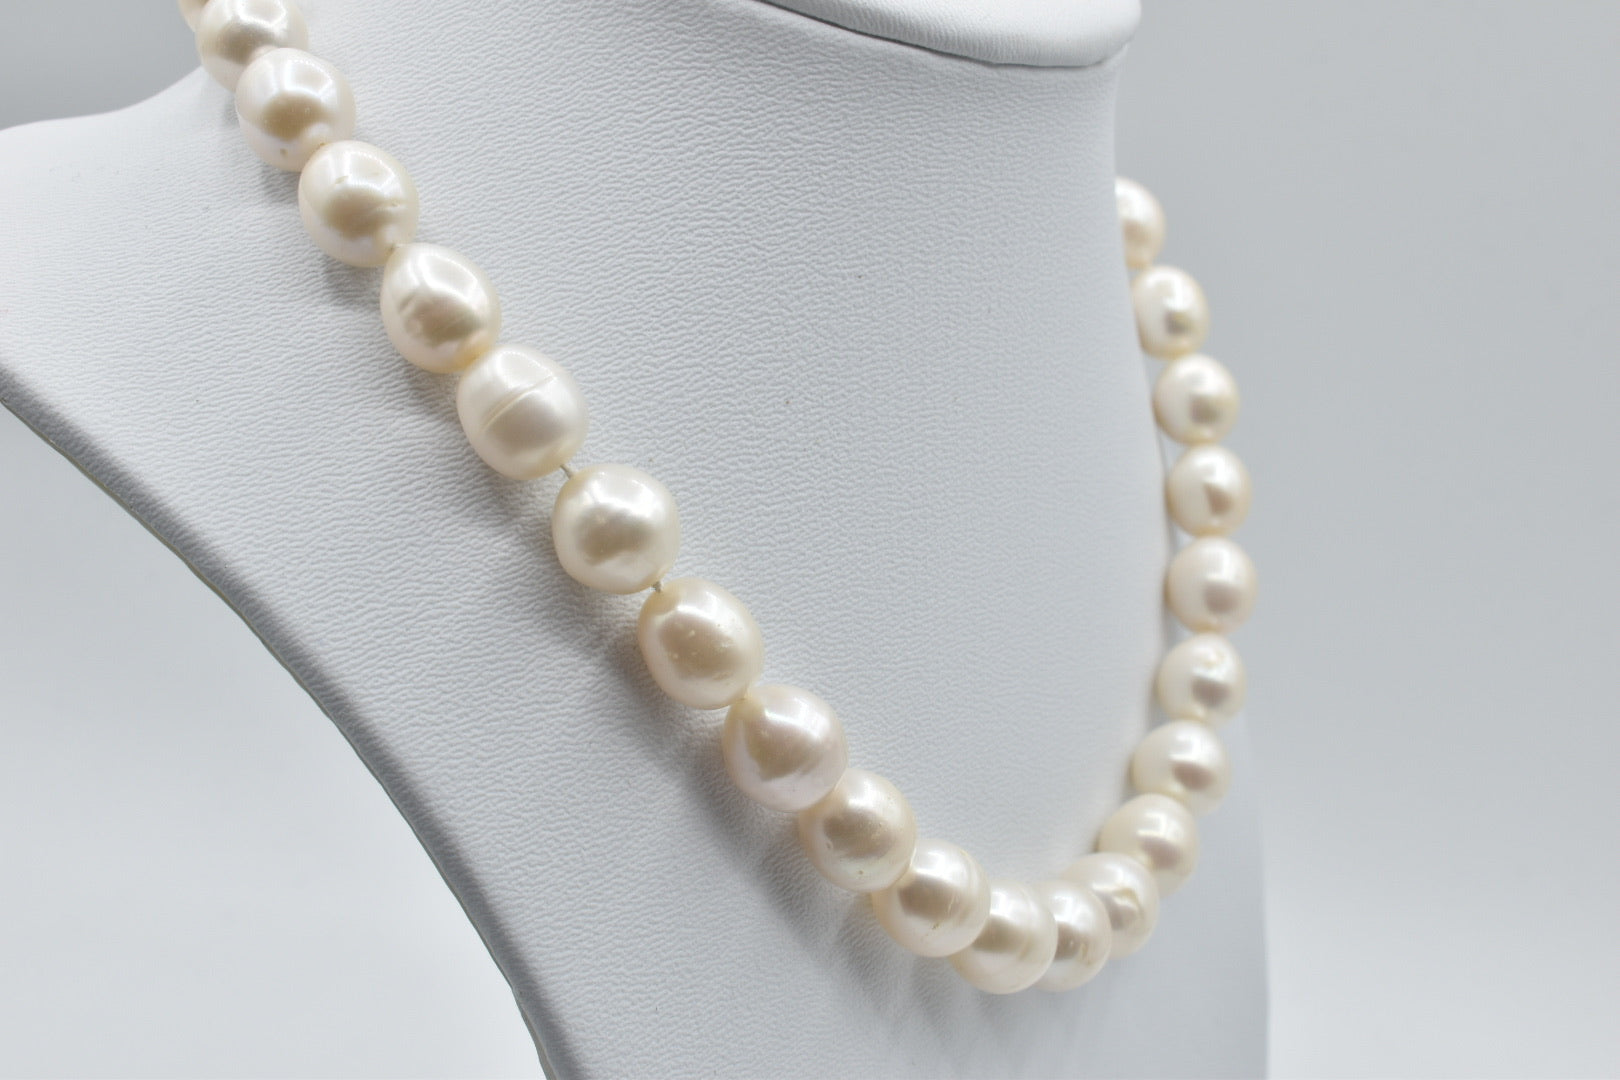 White oval Freshwater pearl necklace (10.5-11.5mm) - 17 inches